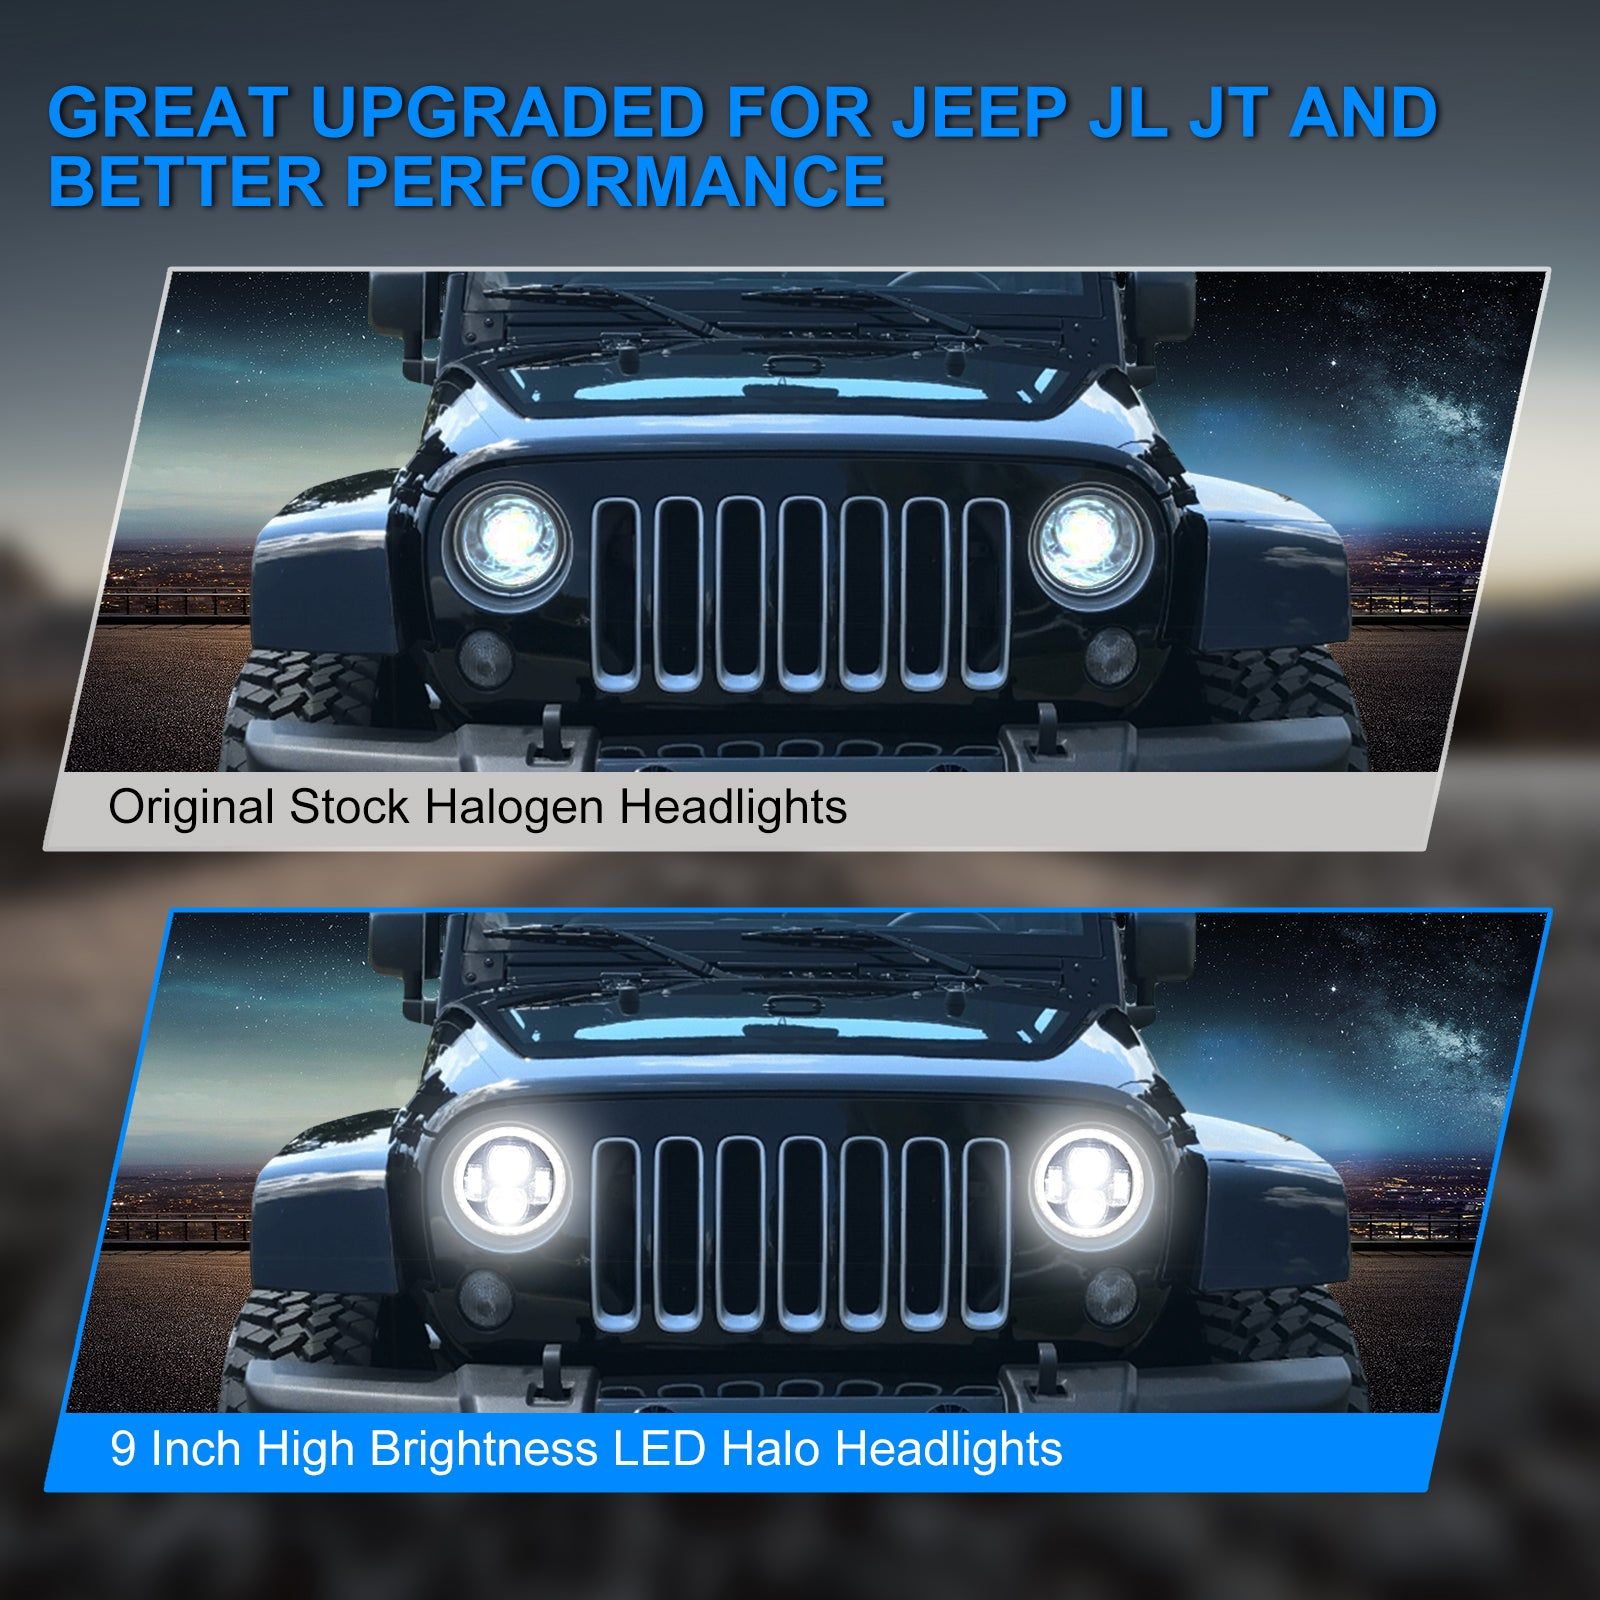 """9"""" Halo LED Headlights with White DRL & Amber Turn Signals For 2018+ Jeep Wrangler JL And Jeep Gladiator JT"""